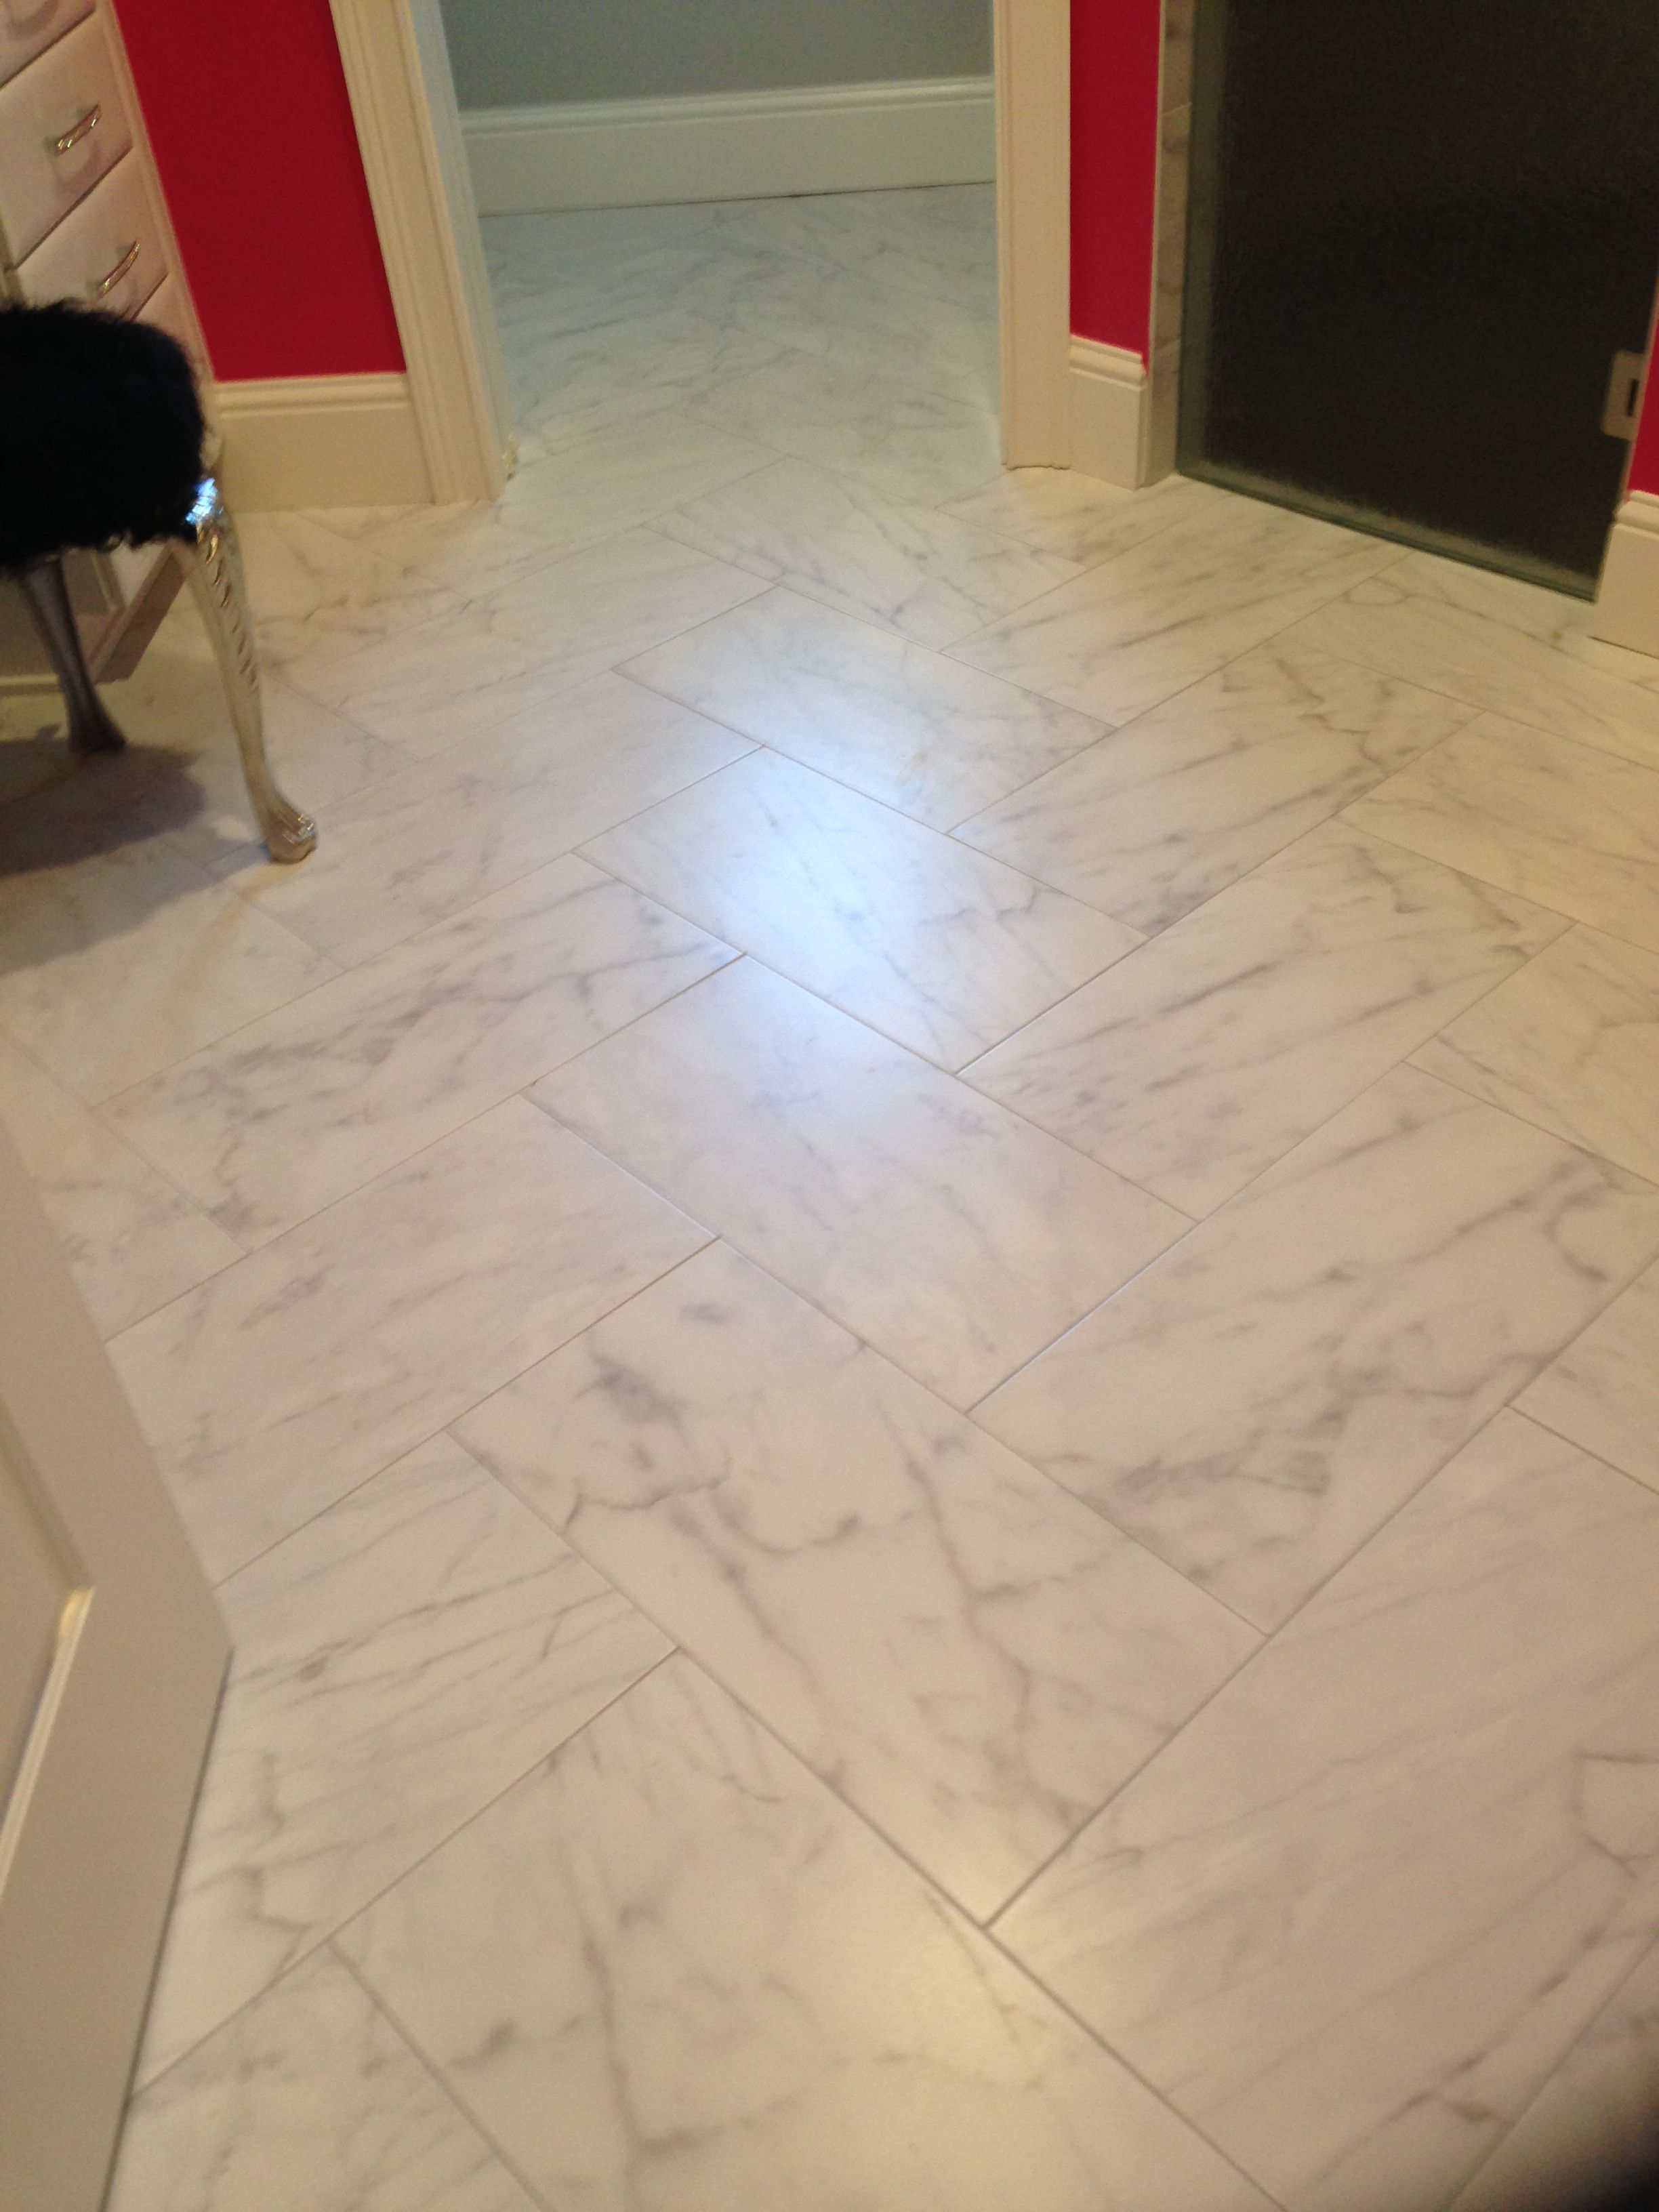 12 X 24 Carrara Look Porcelain Tile In Herringbone Pattern Herringbone Tile Floors Ceramic Floor Tile Flooring